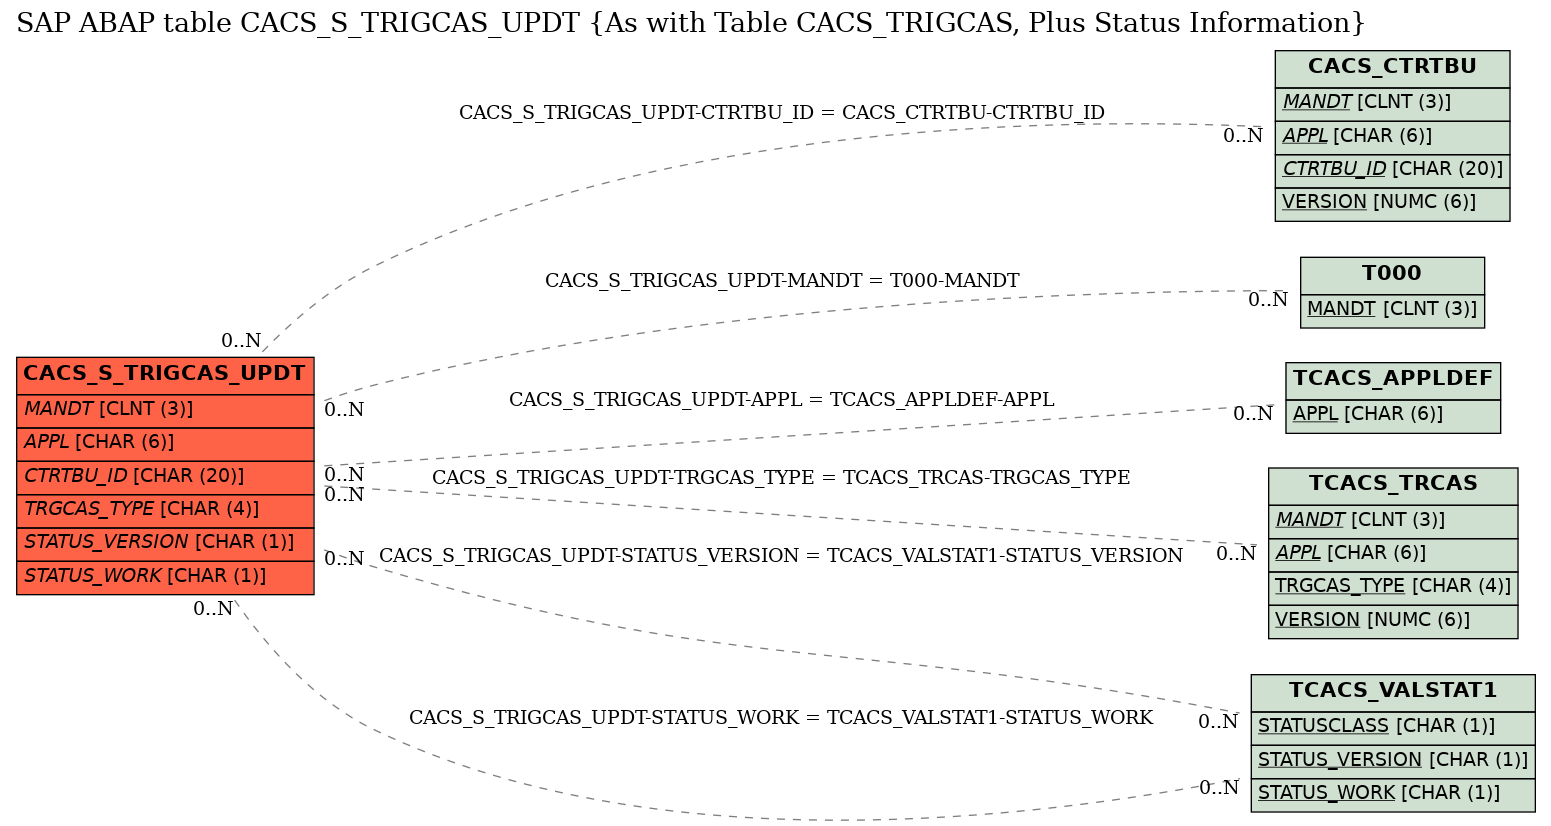 E-R Diagram for table CACS_S_TRIGCAS_UPDT (As with Table CACS_TRIGCAS, Plus Status Information)